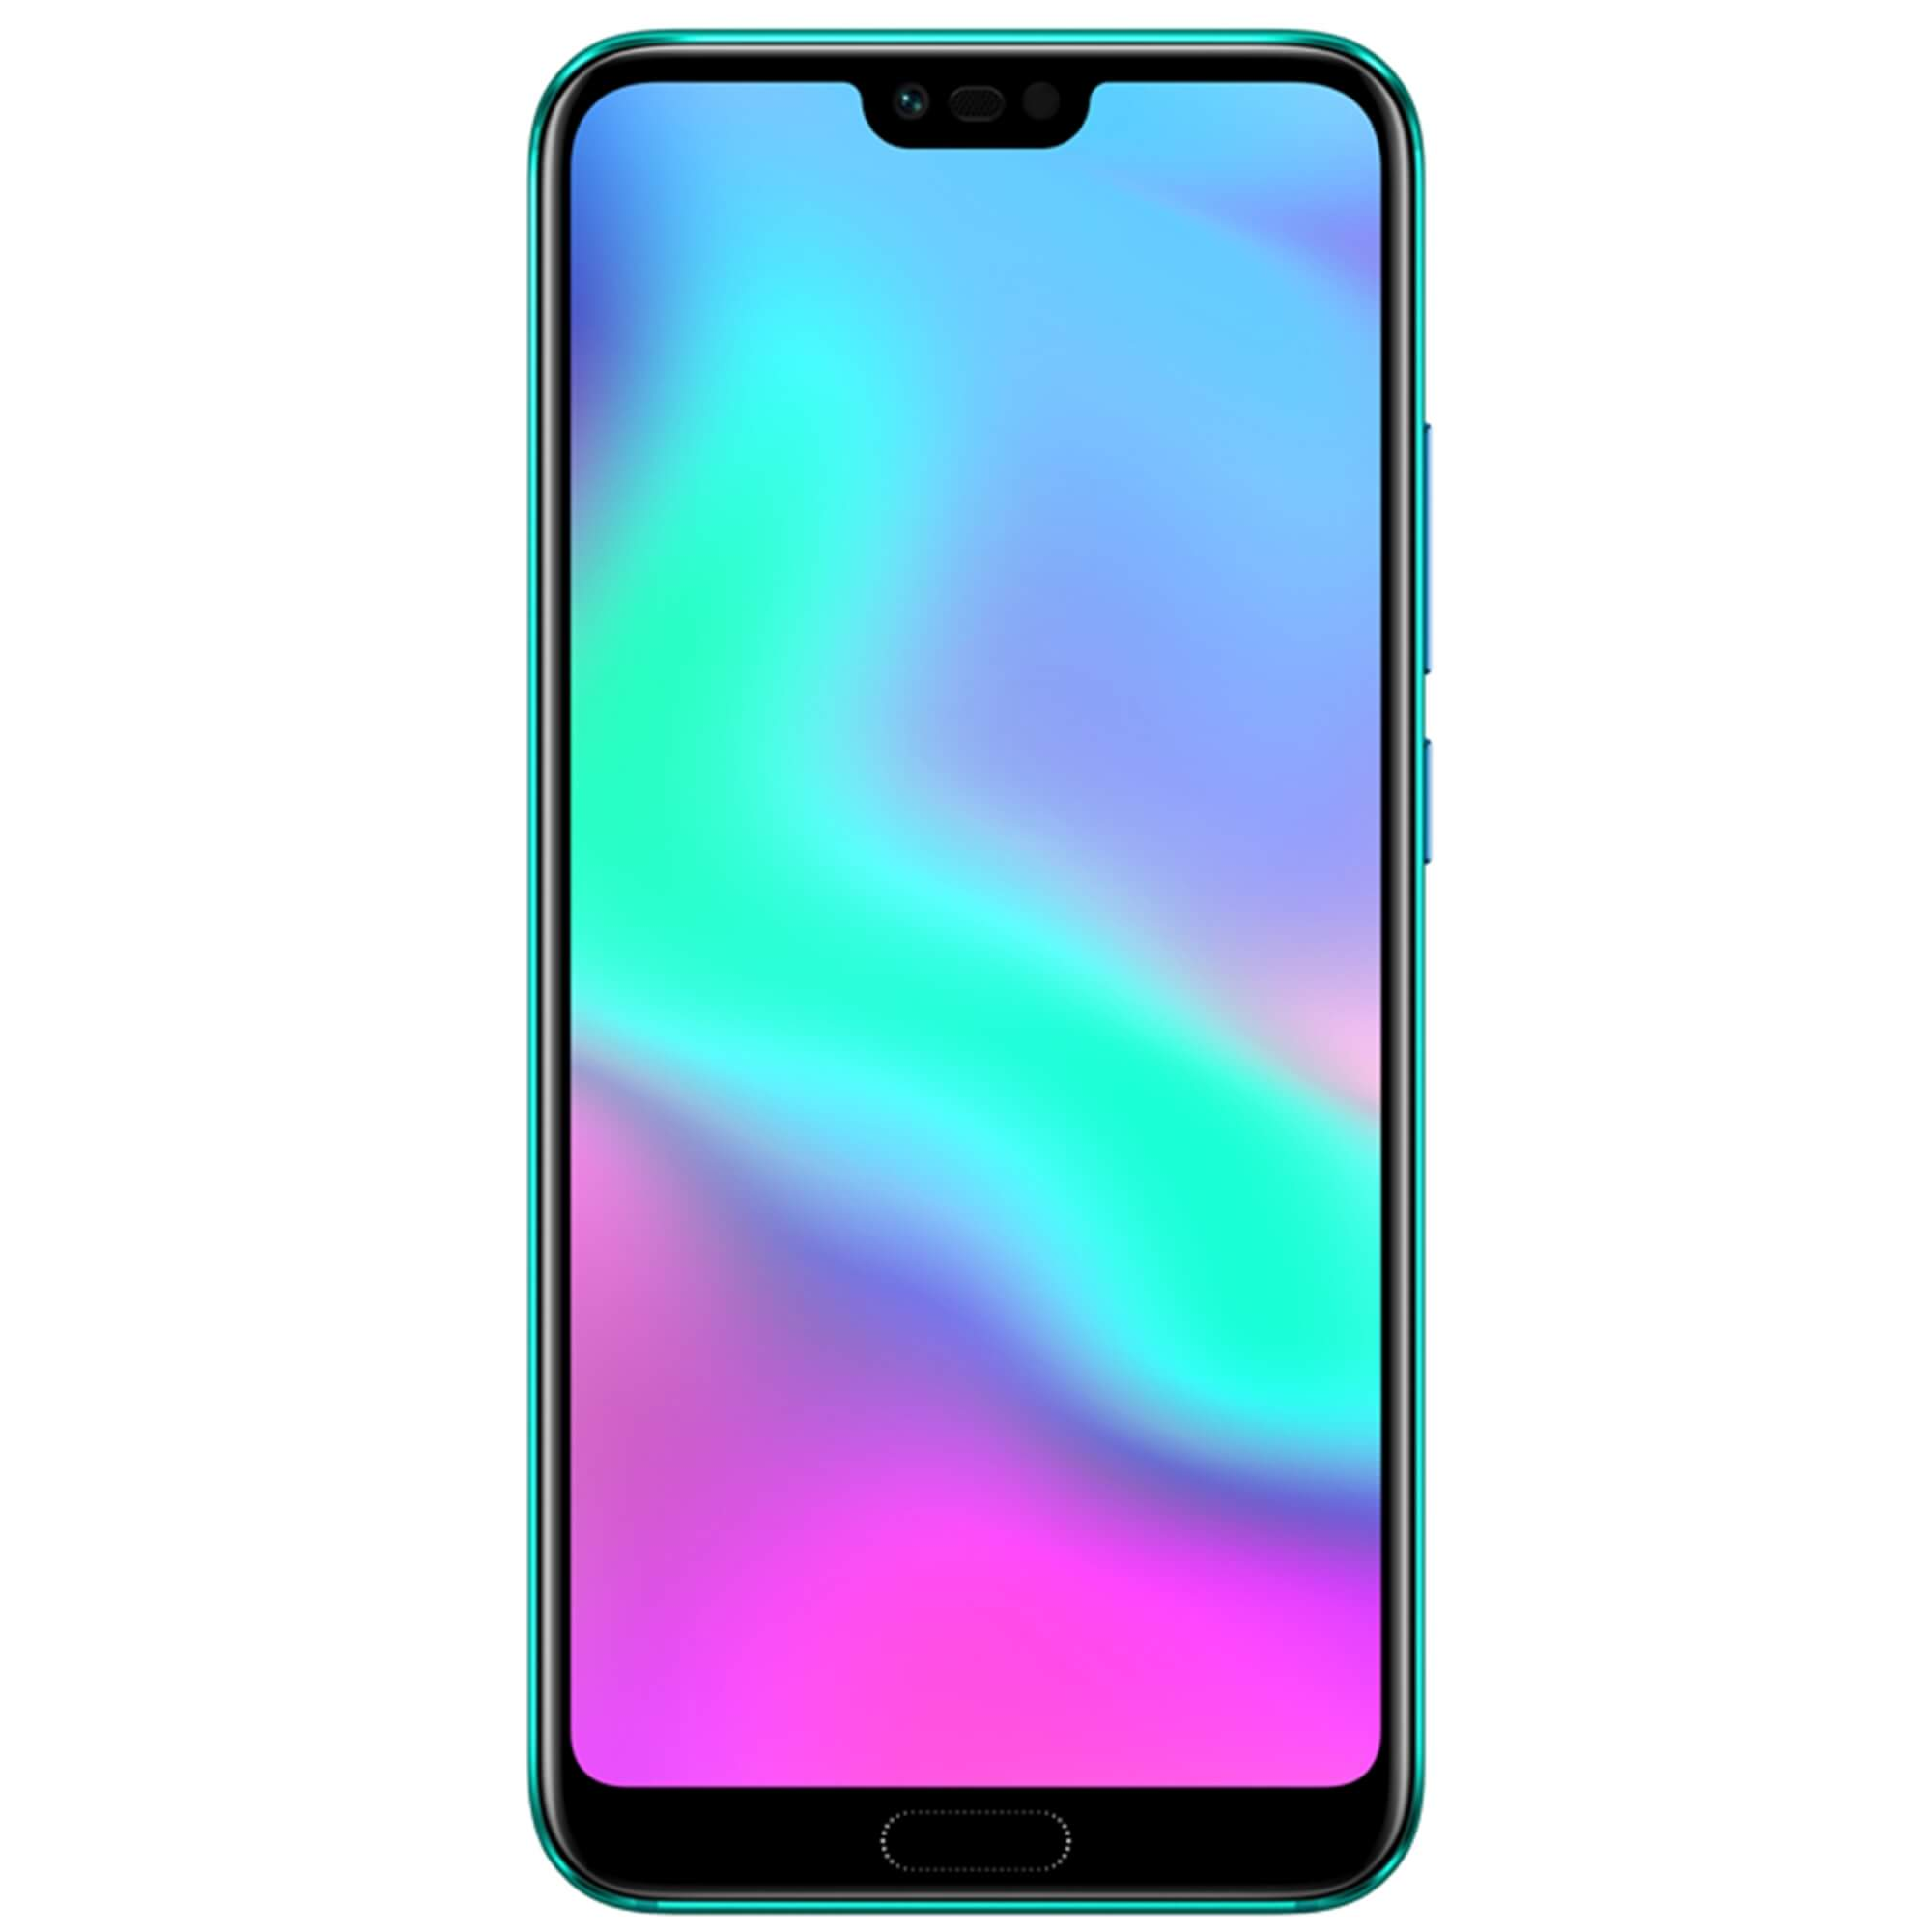 Huawei  Honor 10  Dual SIM, 128GB + 4GB RAM, Phantom Green